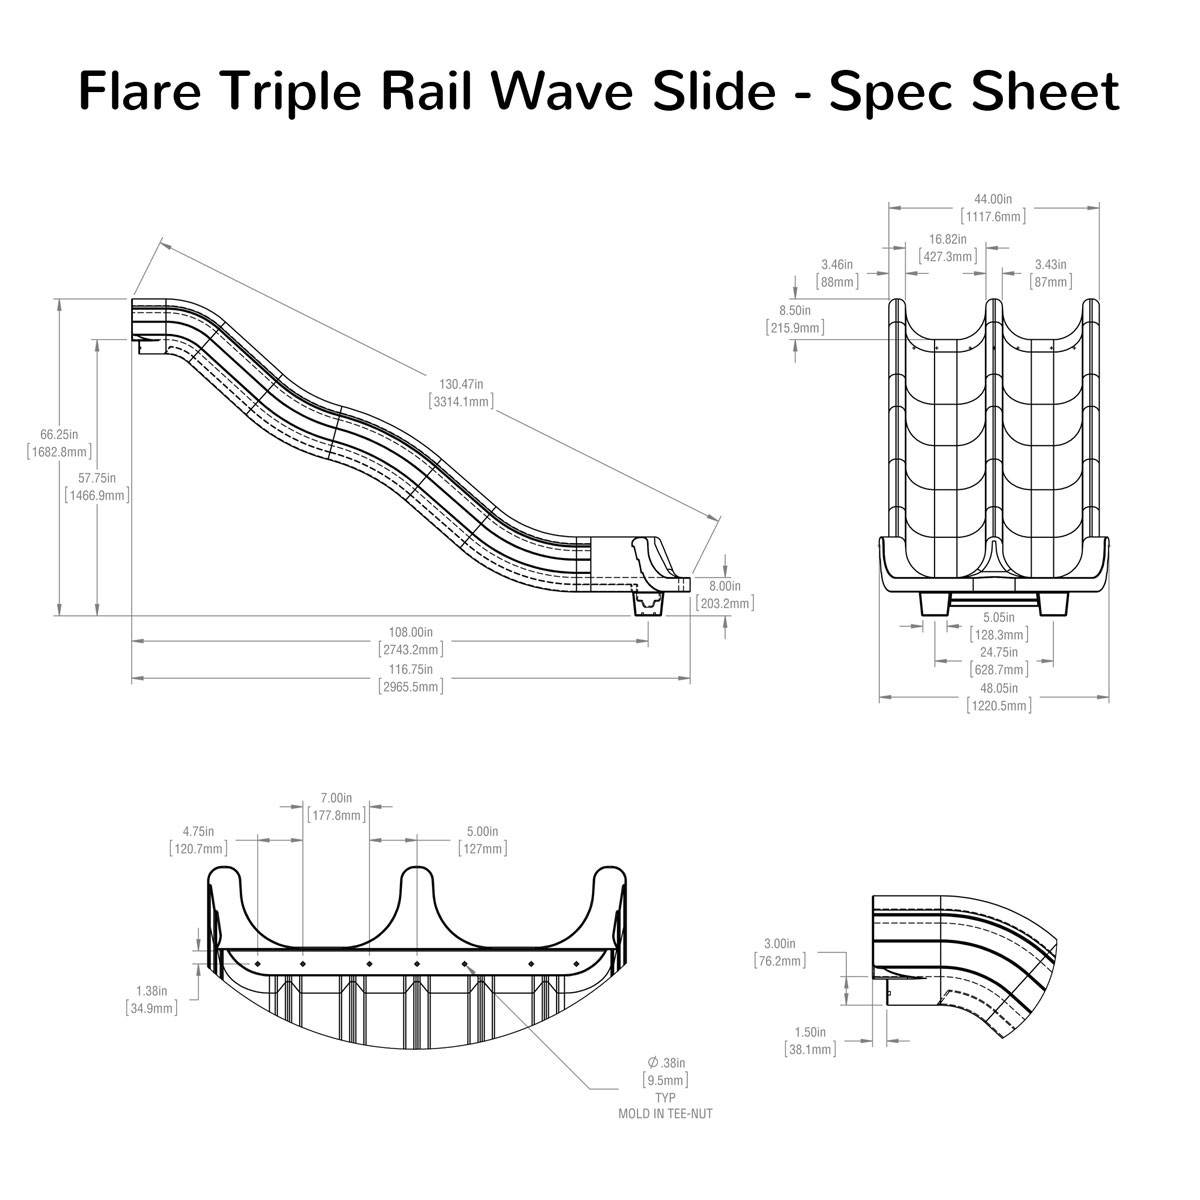 Flare Triple Rail Wave Slide Spec Sheet